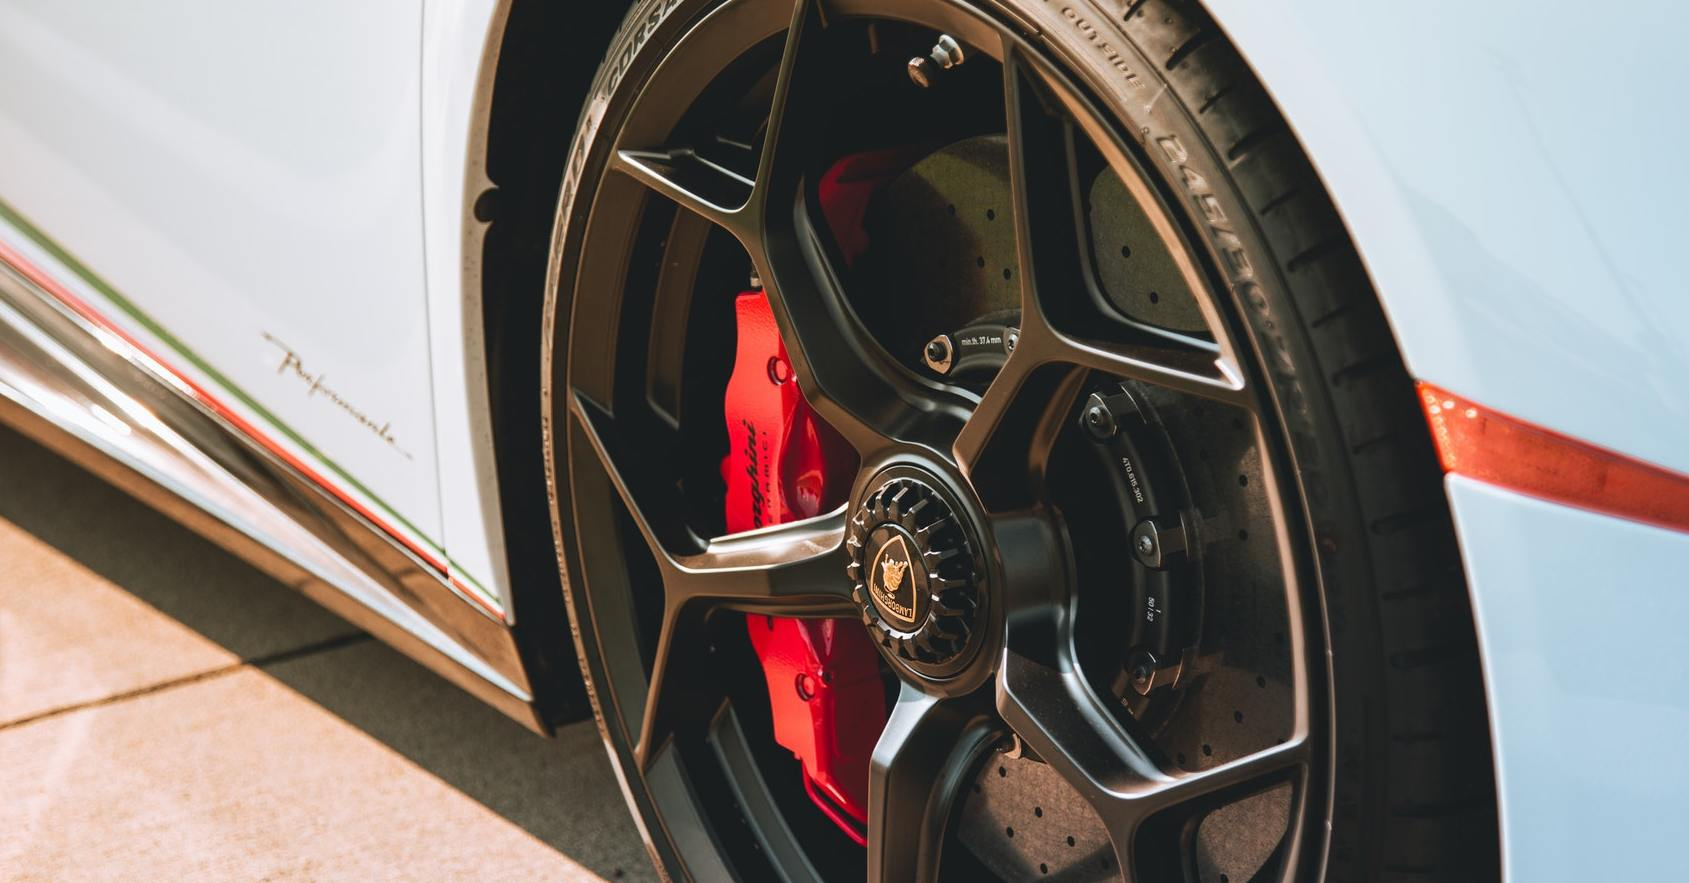 Disc brakes on a Lamborghini. Modern vehicles use disc and drum brakes. Here are the differences between the two, including the pros and cons of each respective system.